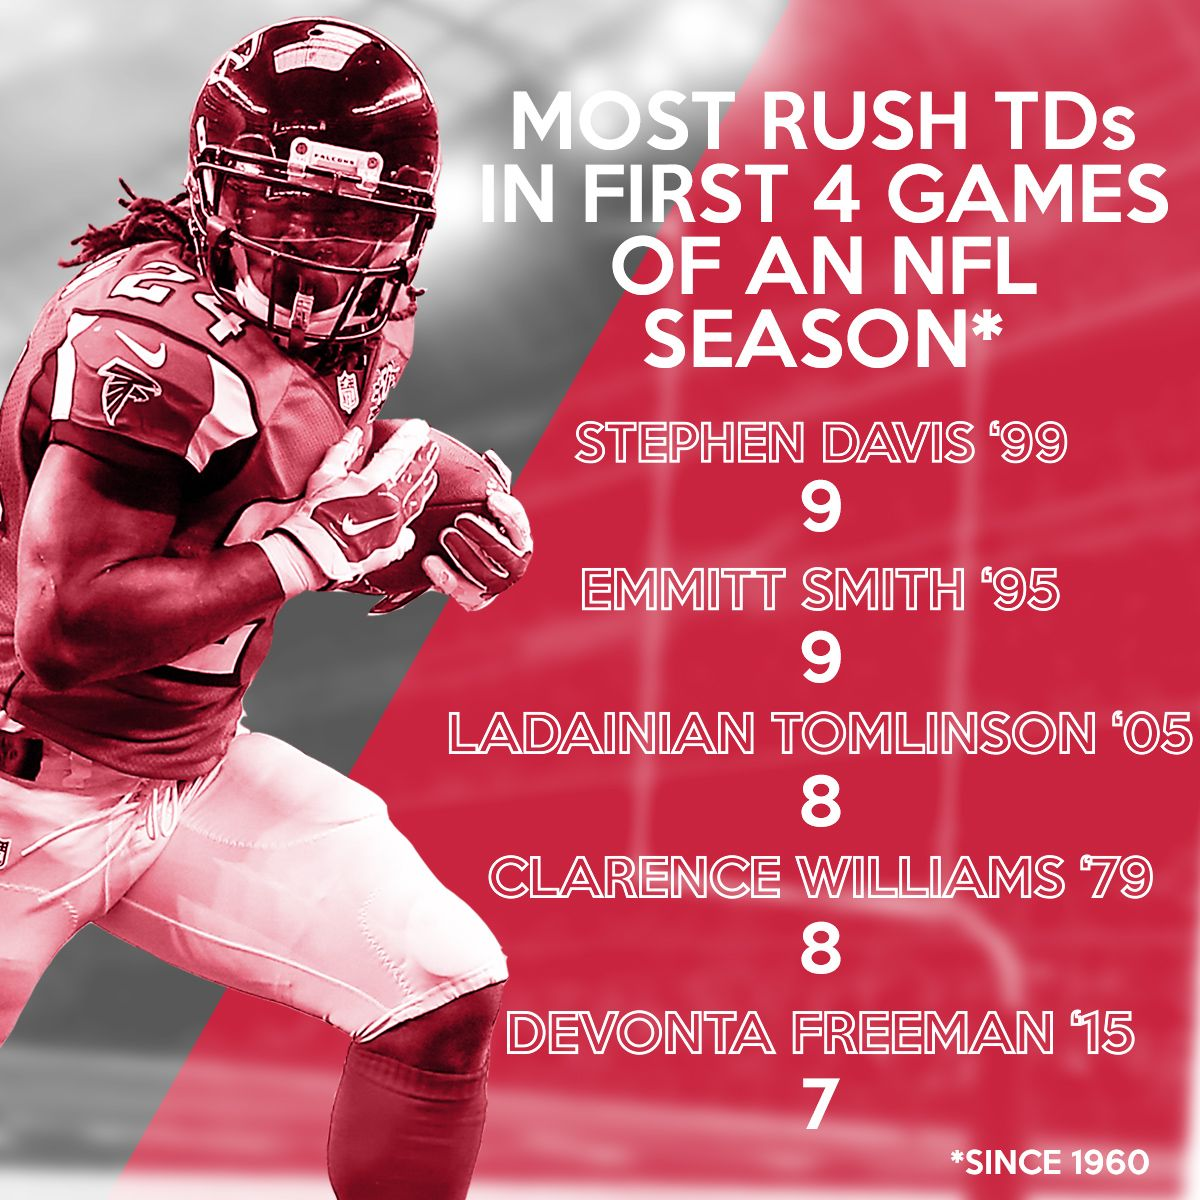 Atlanta Falcons Rb Devona Freeman S 7 Rushing Tds Through Week 4 Are The Fifth Most All Time For Any Running Back Throu Atlanta Falcons Devonta Freeman Falcons